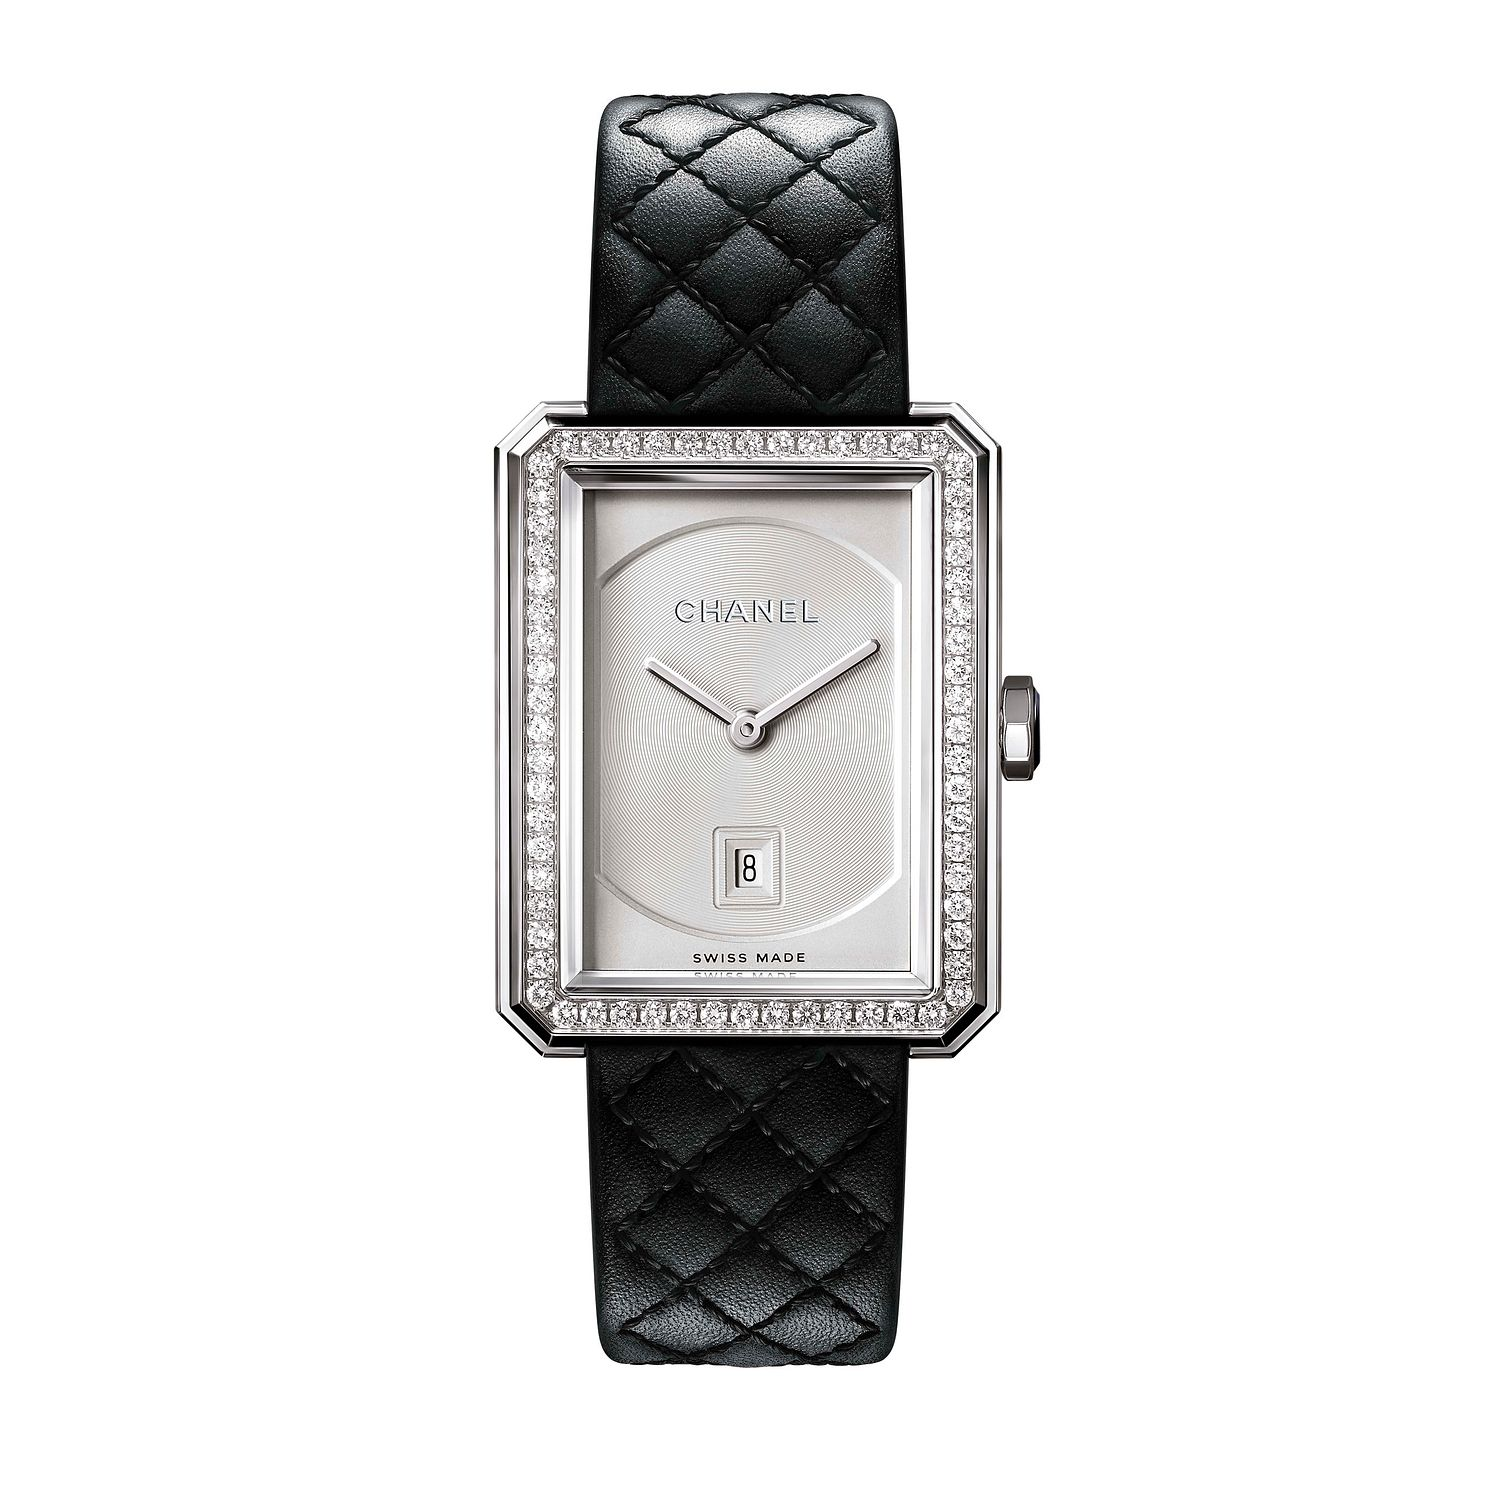 Chanel Boy-Friend Ladies' Black Quilted Leather Strap Watch - Product number 1184369